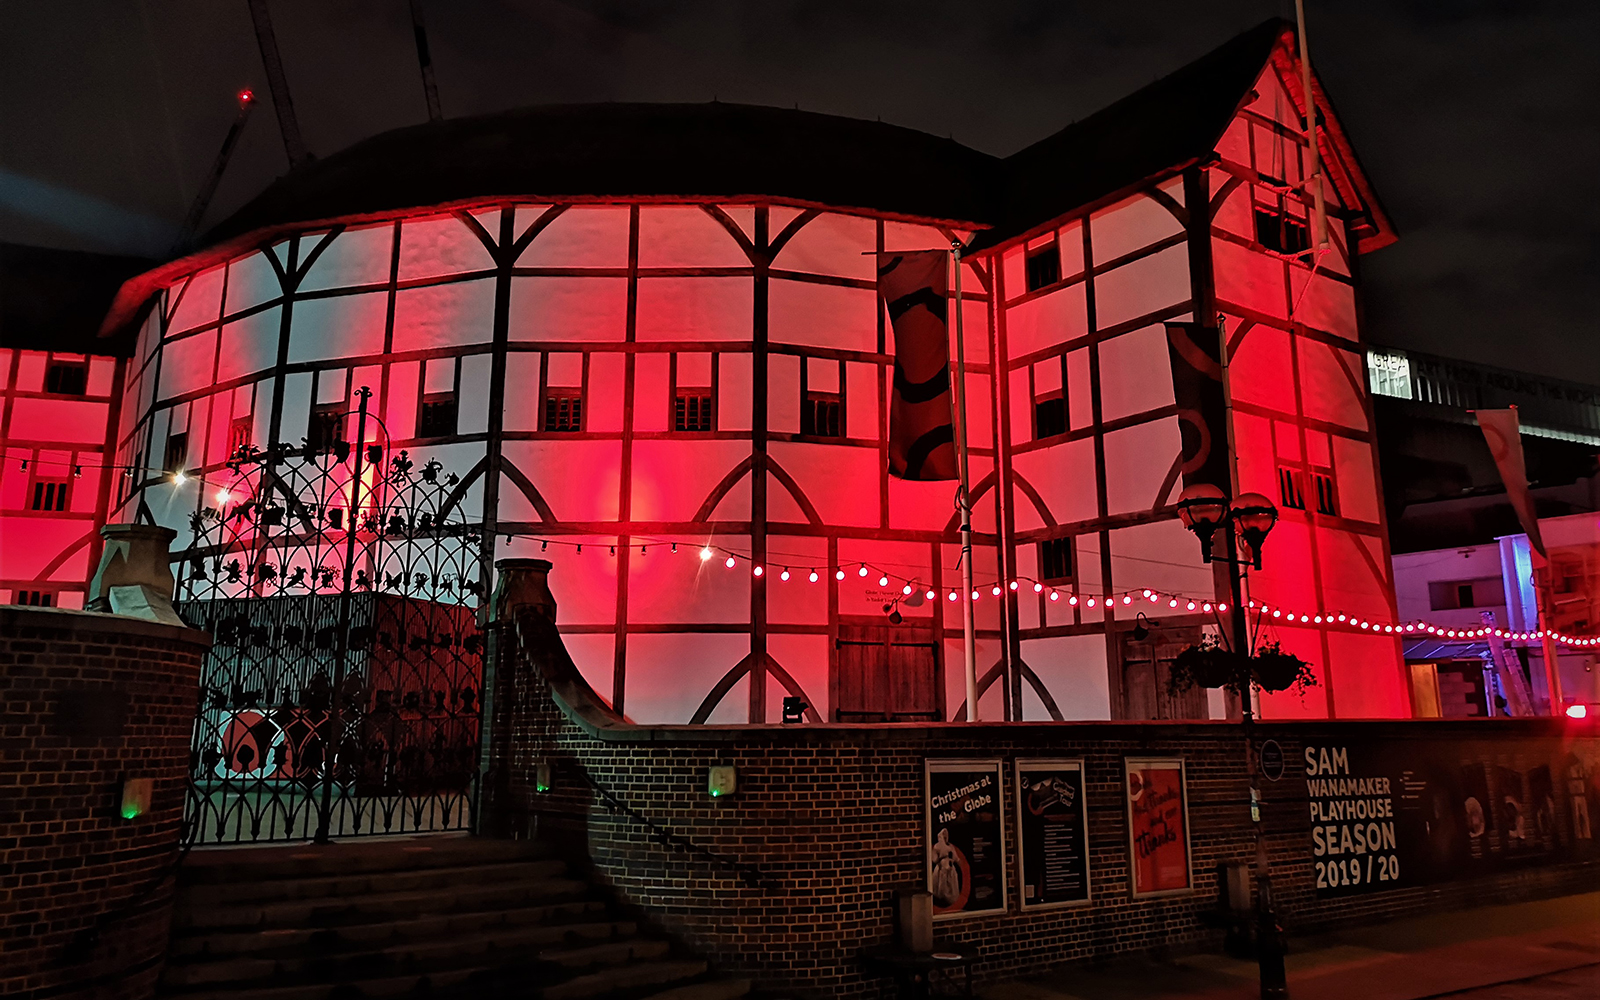 The Globe Theatre on bankside at night, lit by red light.